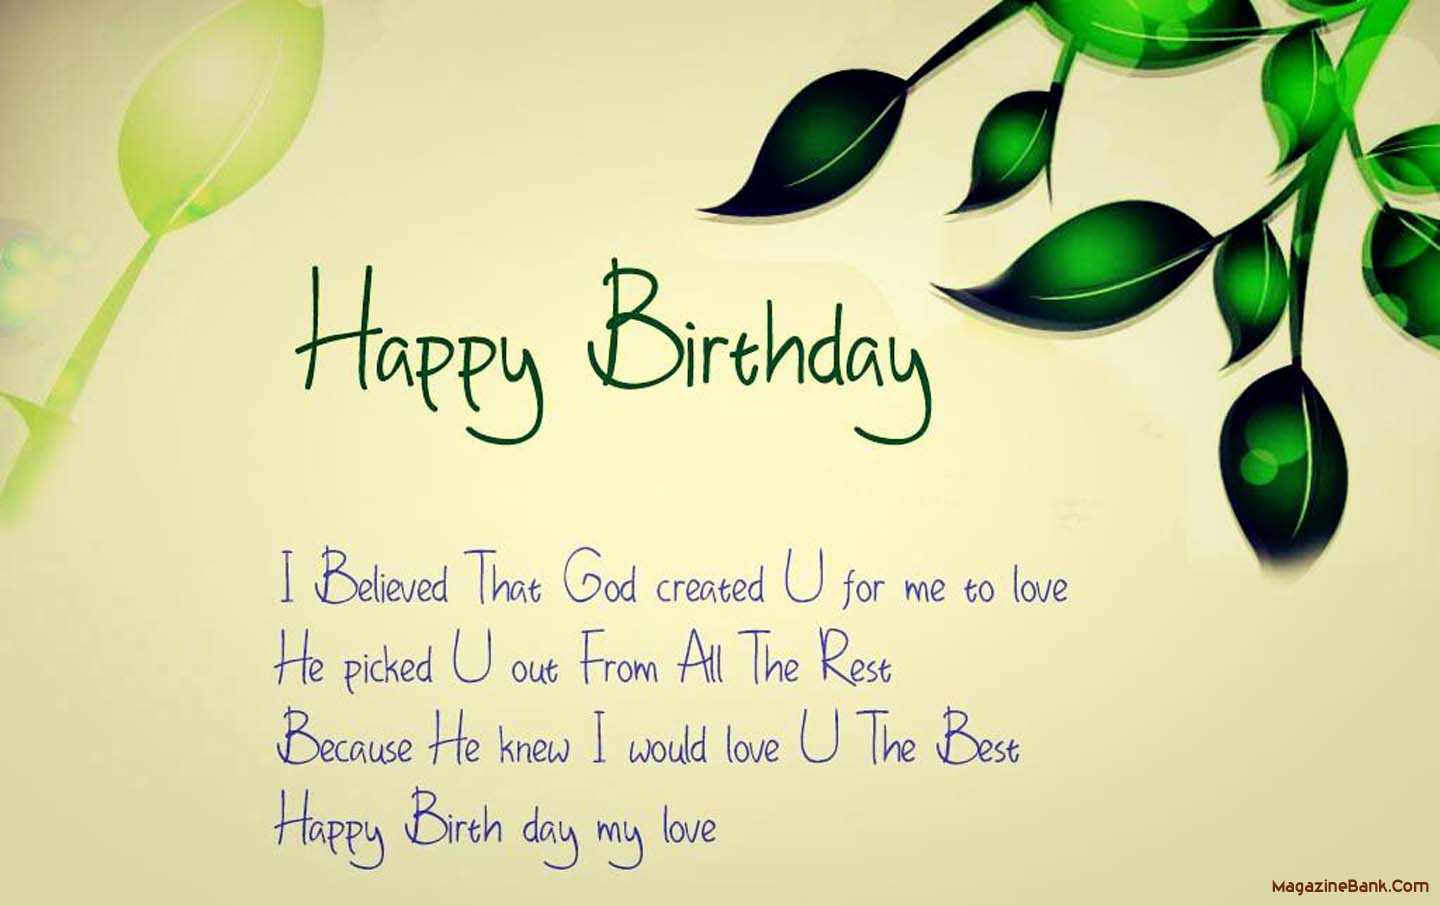 Best ideas about Happy Birthday Boss Quotes . Save or Pin Happy Birthday Boss Quotes From Us QuotesGram Now.